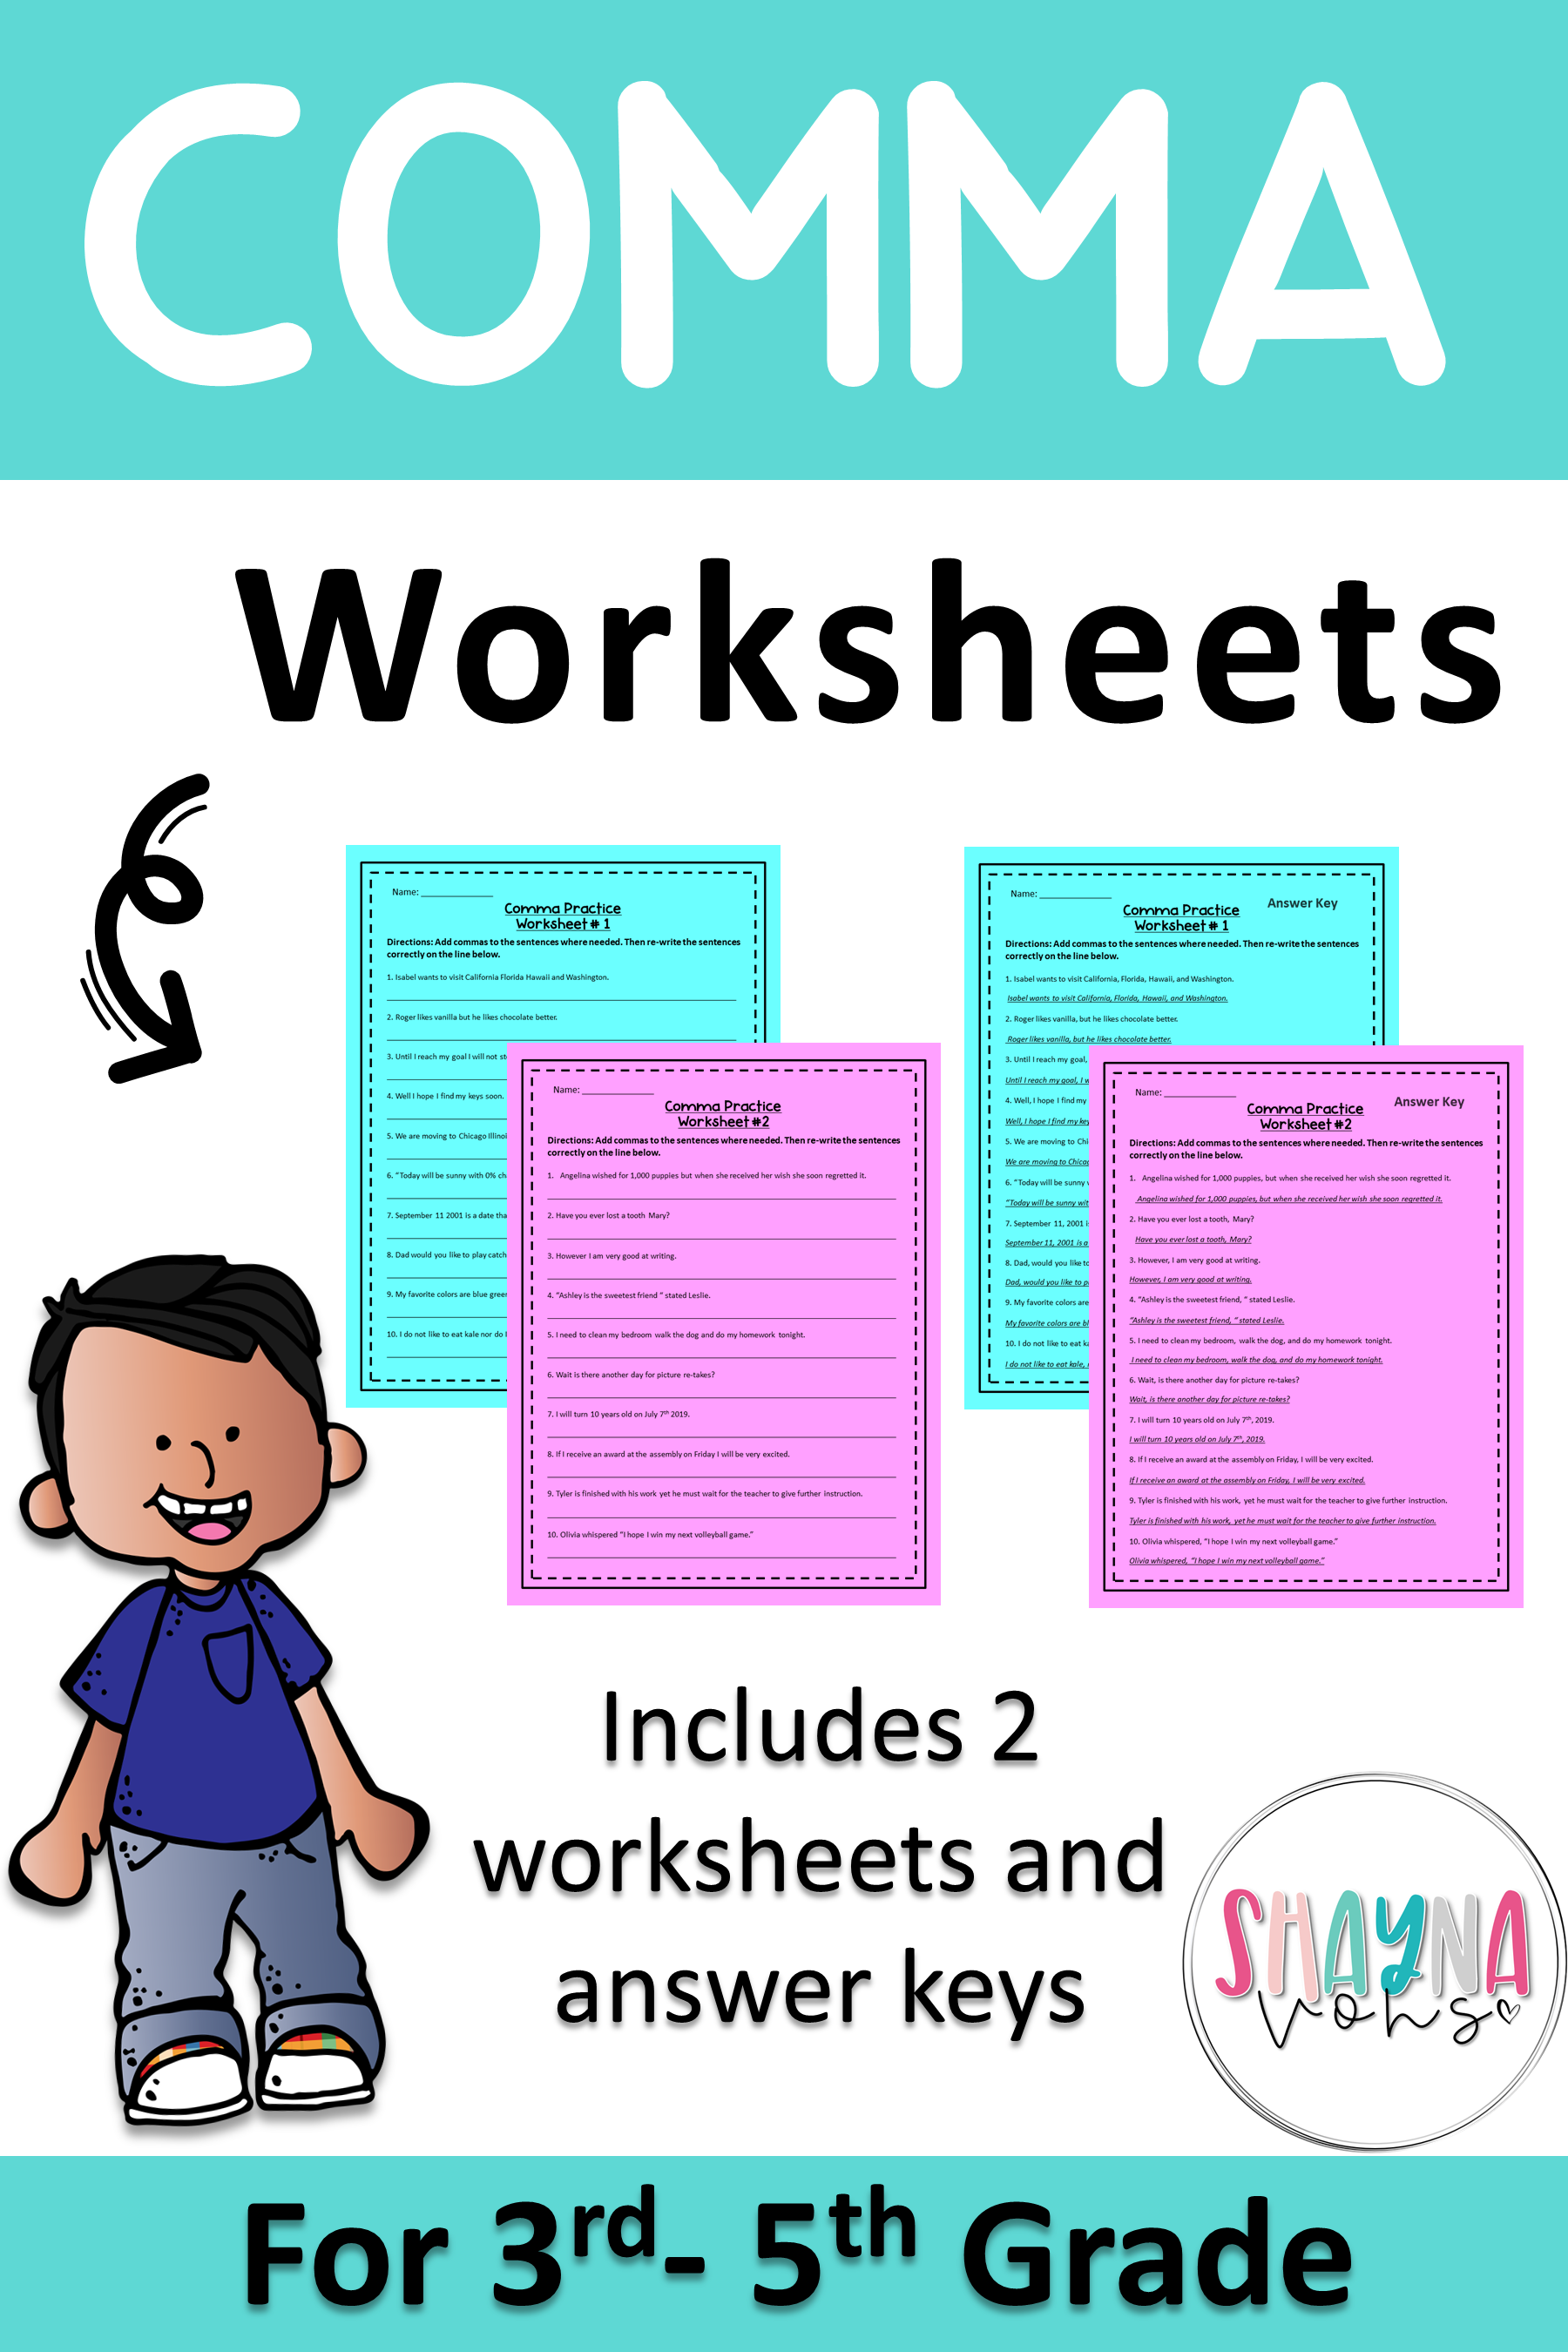 2 Comma Worksheets